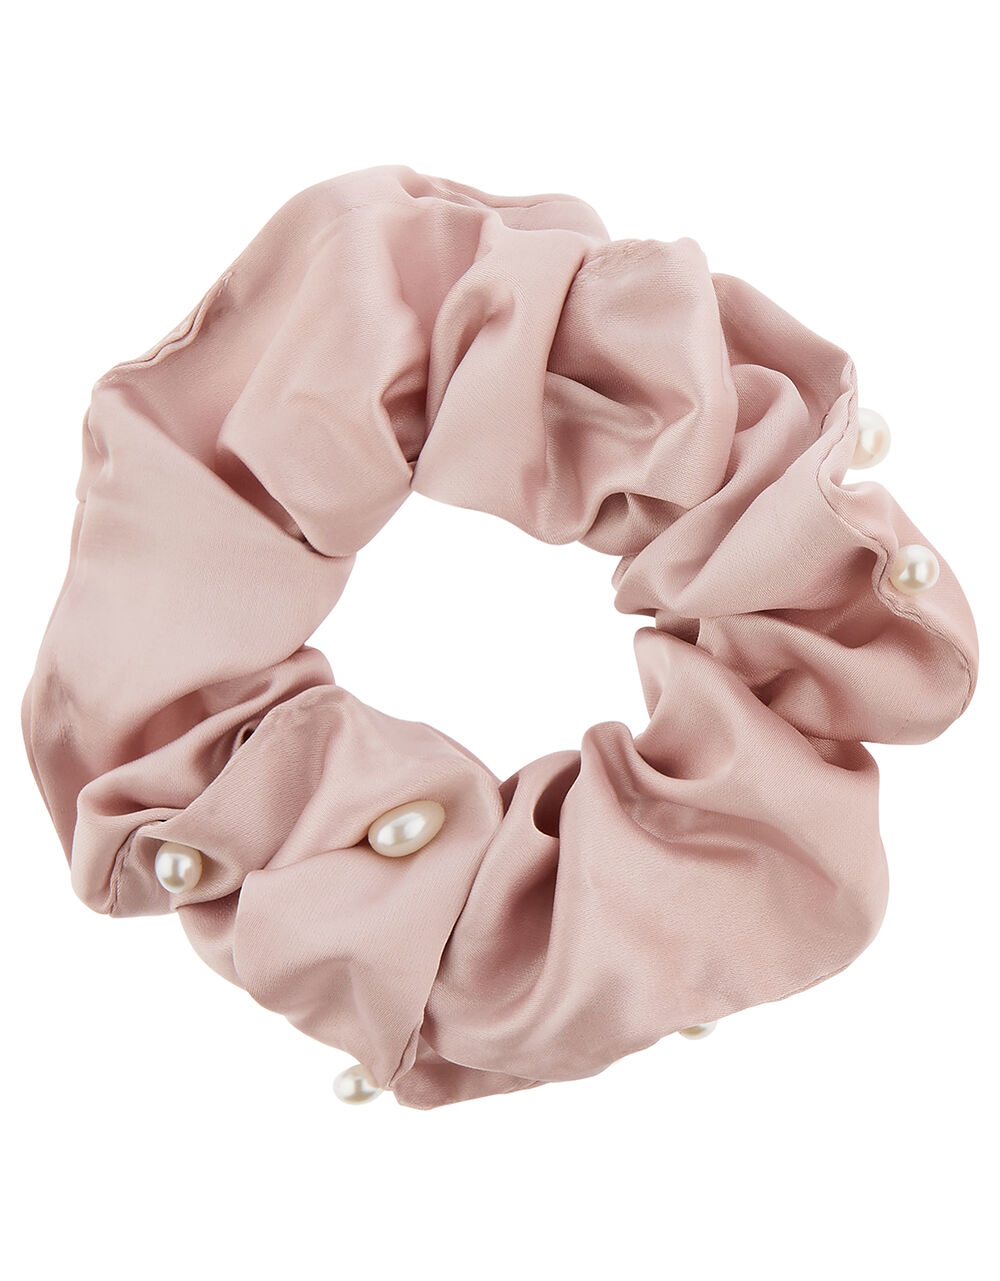 Oversized Pearly Satin Hair Scrunchie, , large